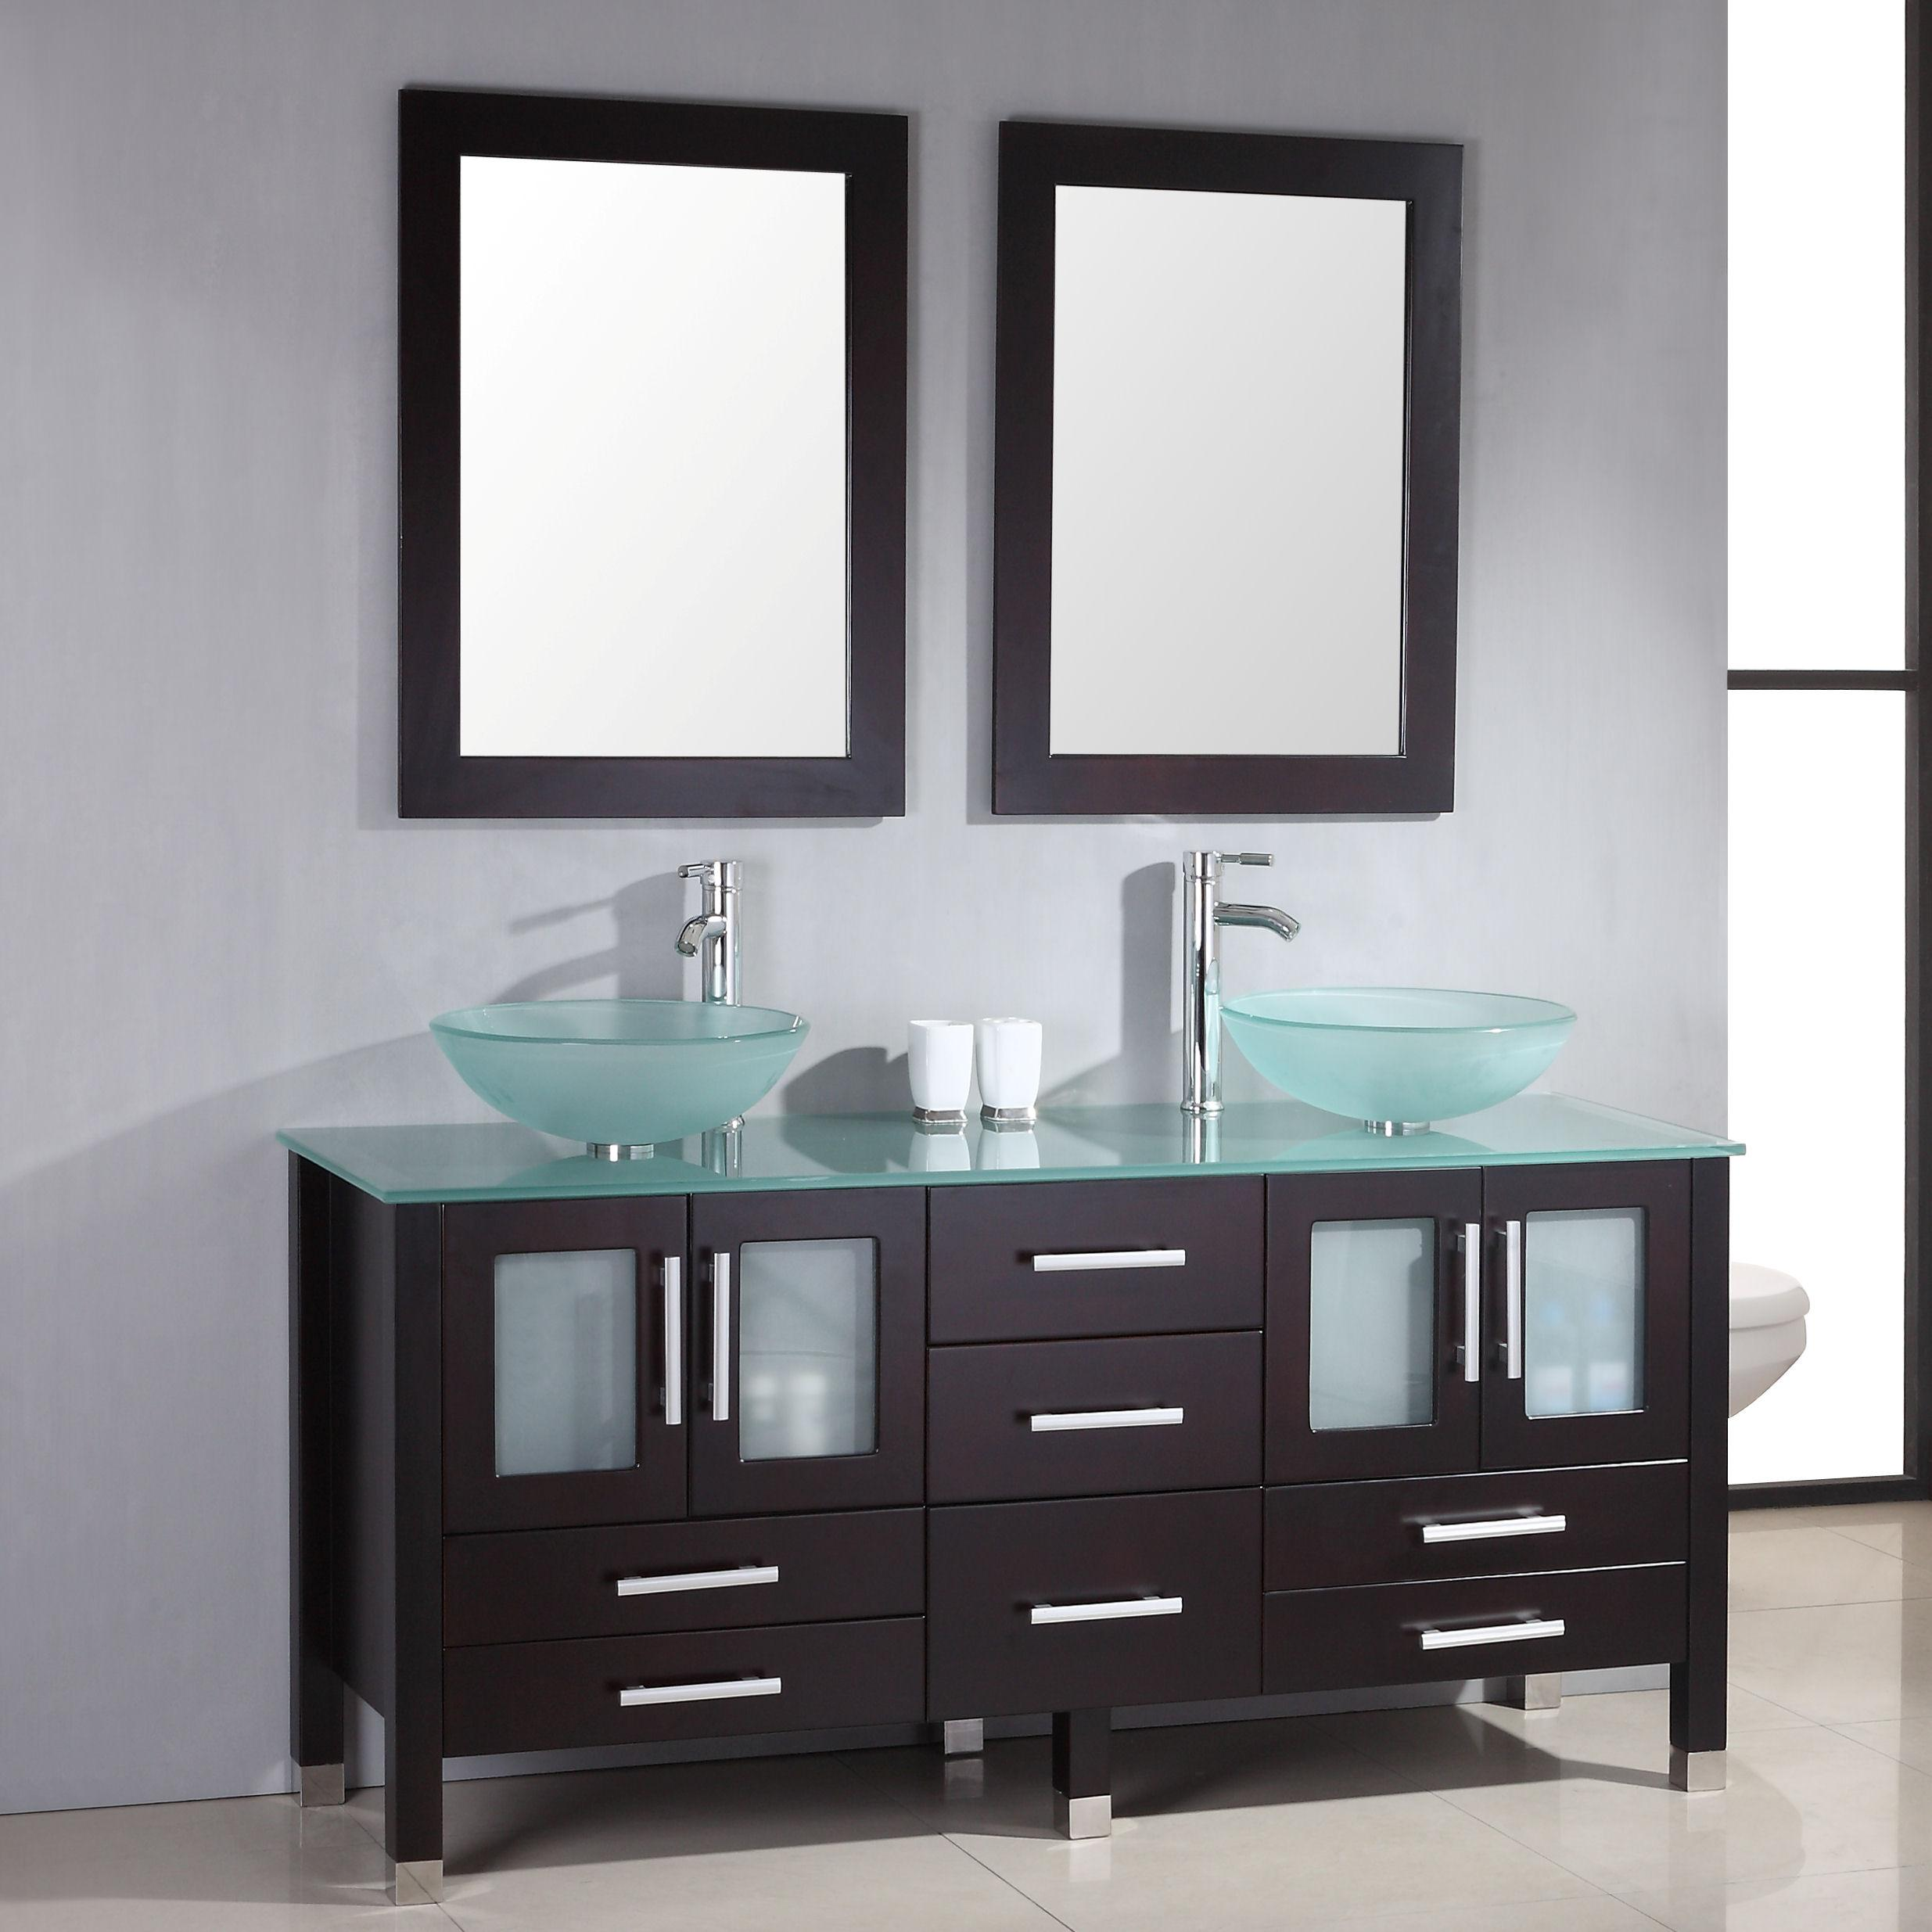 Vanity Home Depot for Bathroom Cabinets Design Ideas: Bathroom Vanity Cabinets Home Depot | Home Depot 30 Inch Vanity | Vanity Home Depot